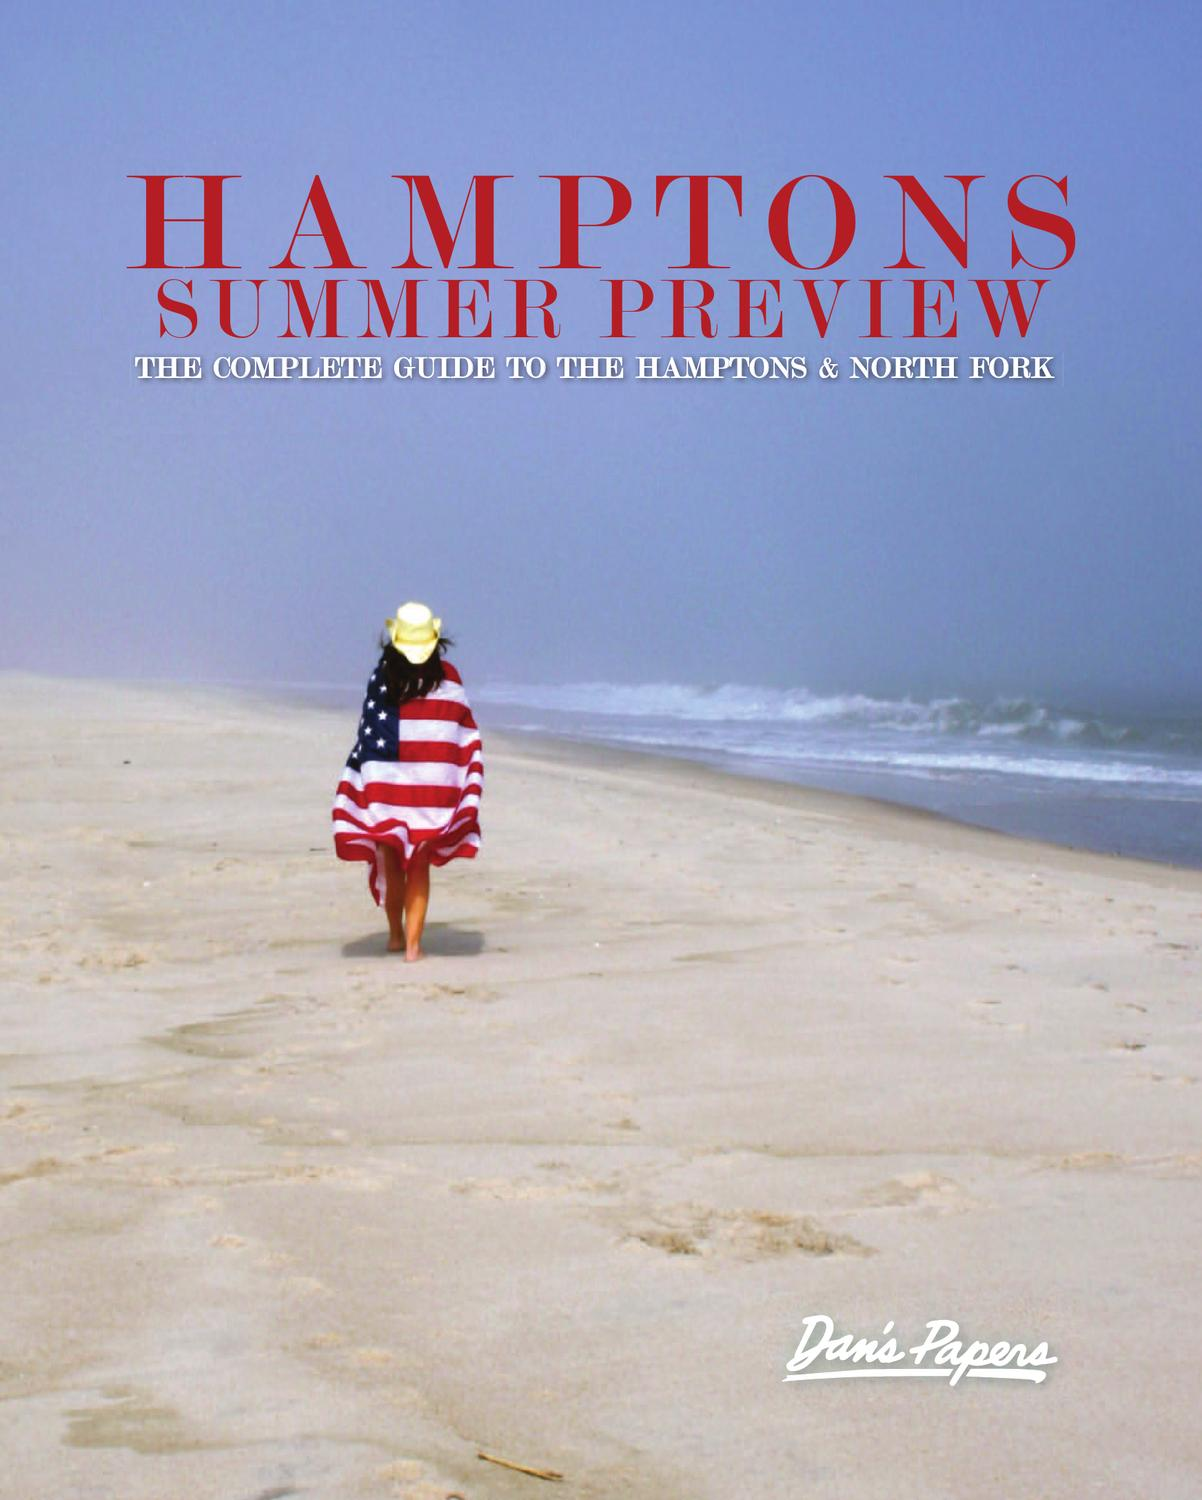 Dan s Papers Hamptons Summer Preview May 17 c6c438fa3e0